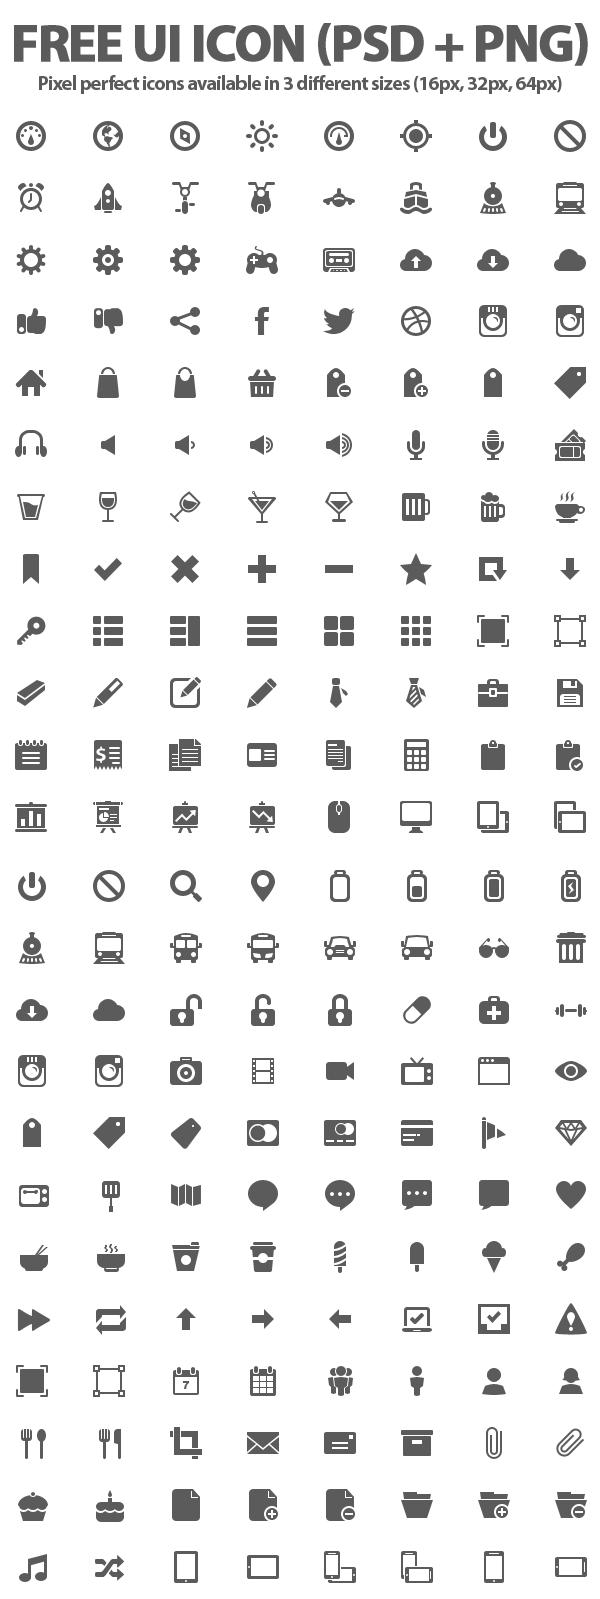 free+ui+icons+psd+png+preview